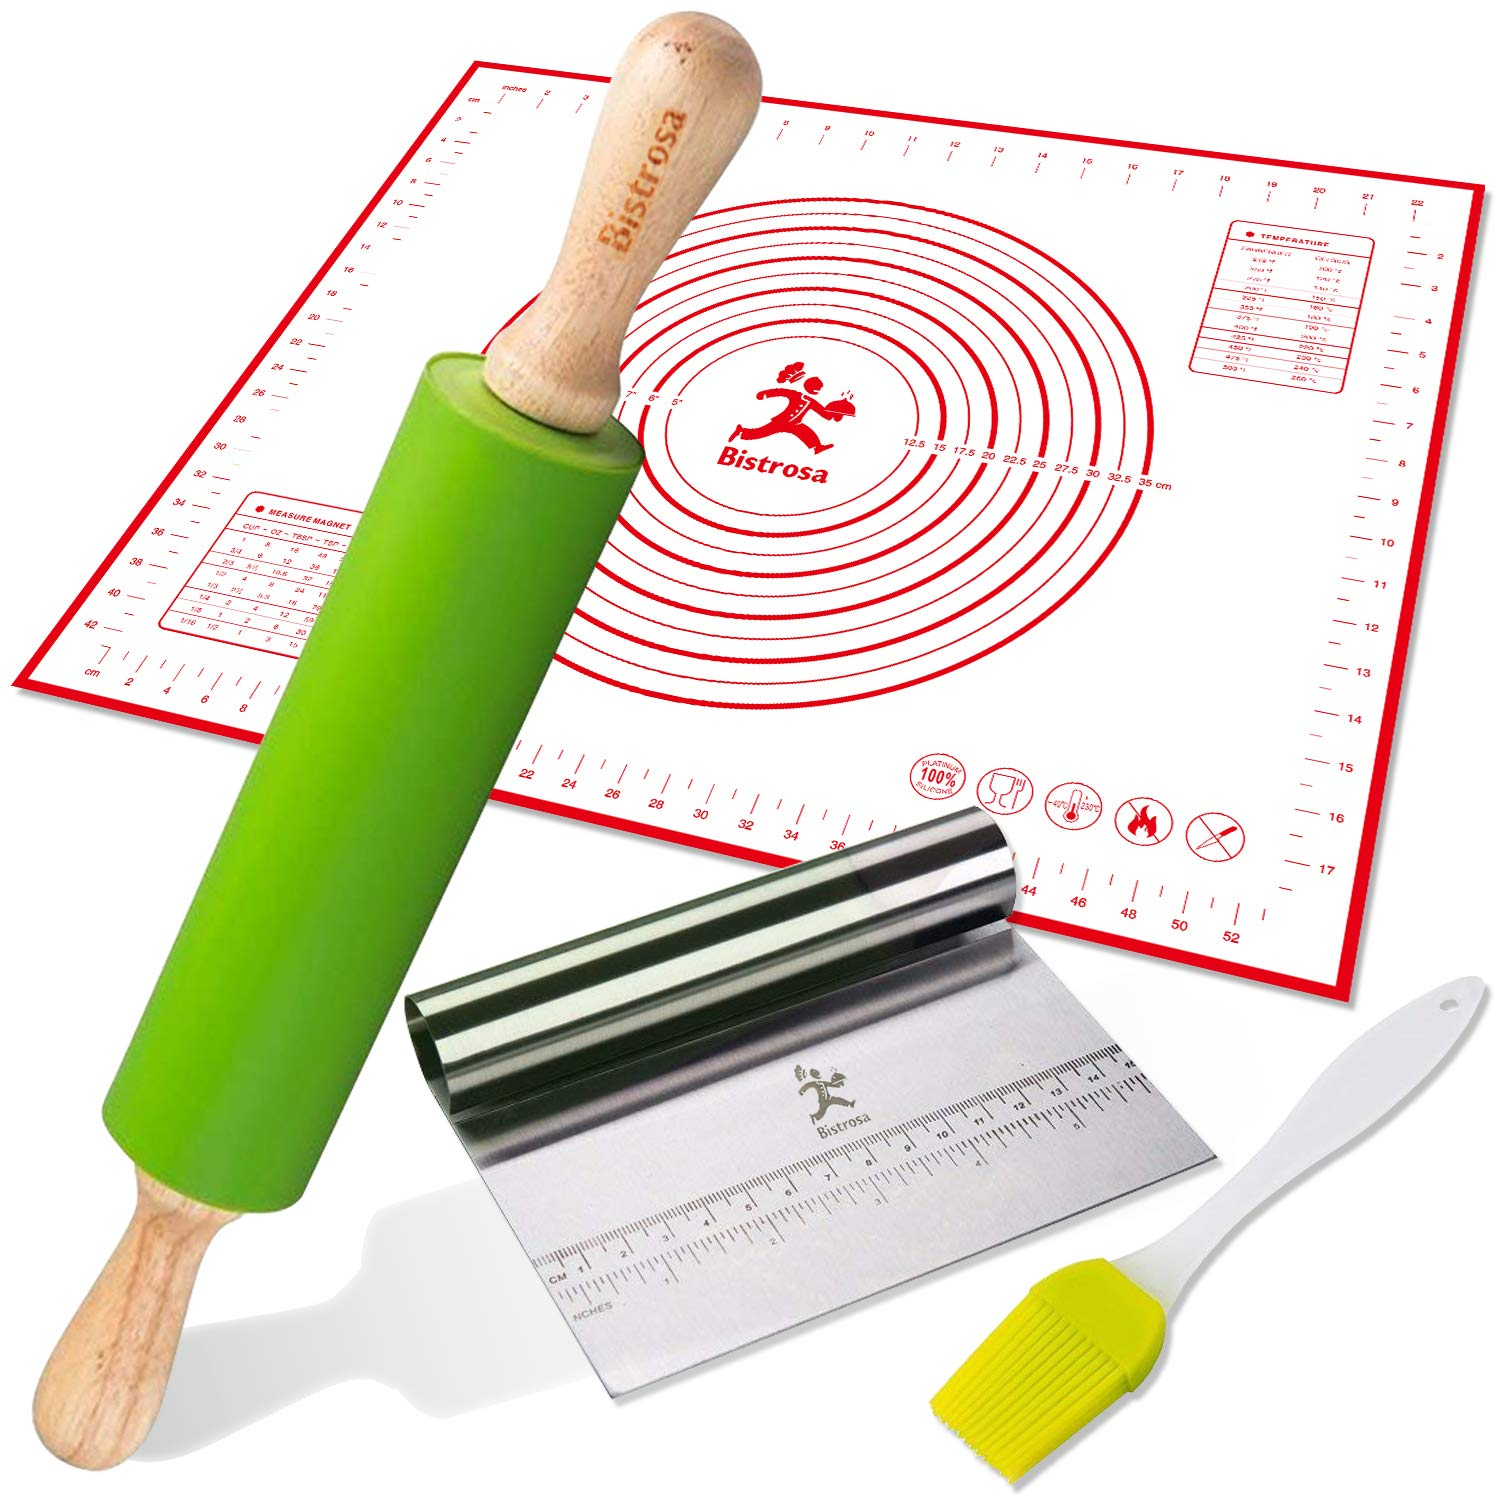 Rolling Pins for Baking Combo, Pastry Mat Kit With Chopper/Scraper and Basting Brush, Large 19x23 Inch Reusable Silicone Non-Slip Non-Stick Mat With Fondant/ Dough Measurements/Dough Roller Baking Set Bistrosa PM01